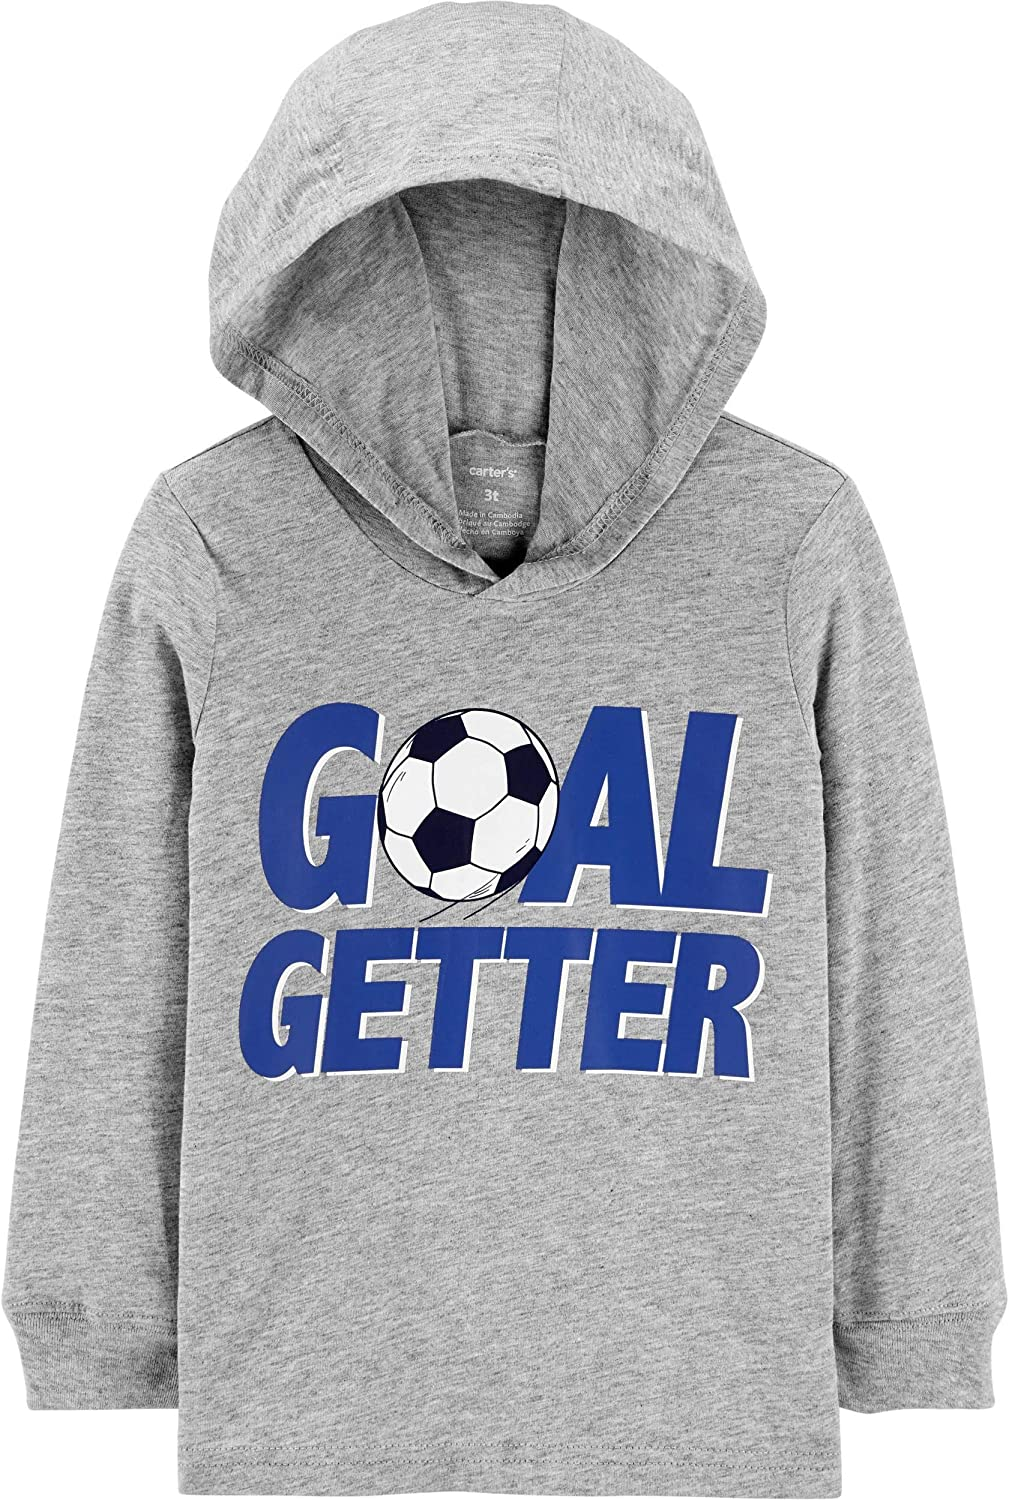 Carter's Boys Glow-In-The-Dark Goal Getter Soccer Ball Hooded Jersey Tee Pullover Gray Long Sleeve, 24 Months